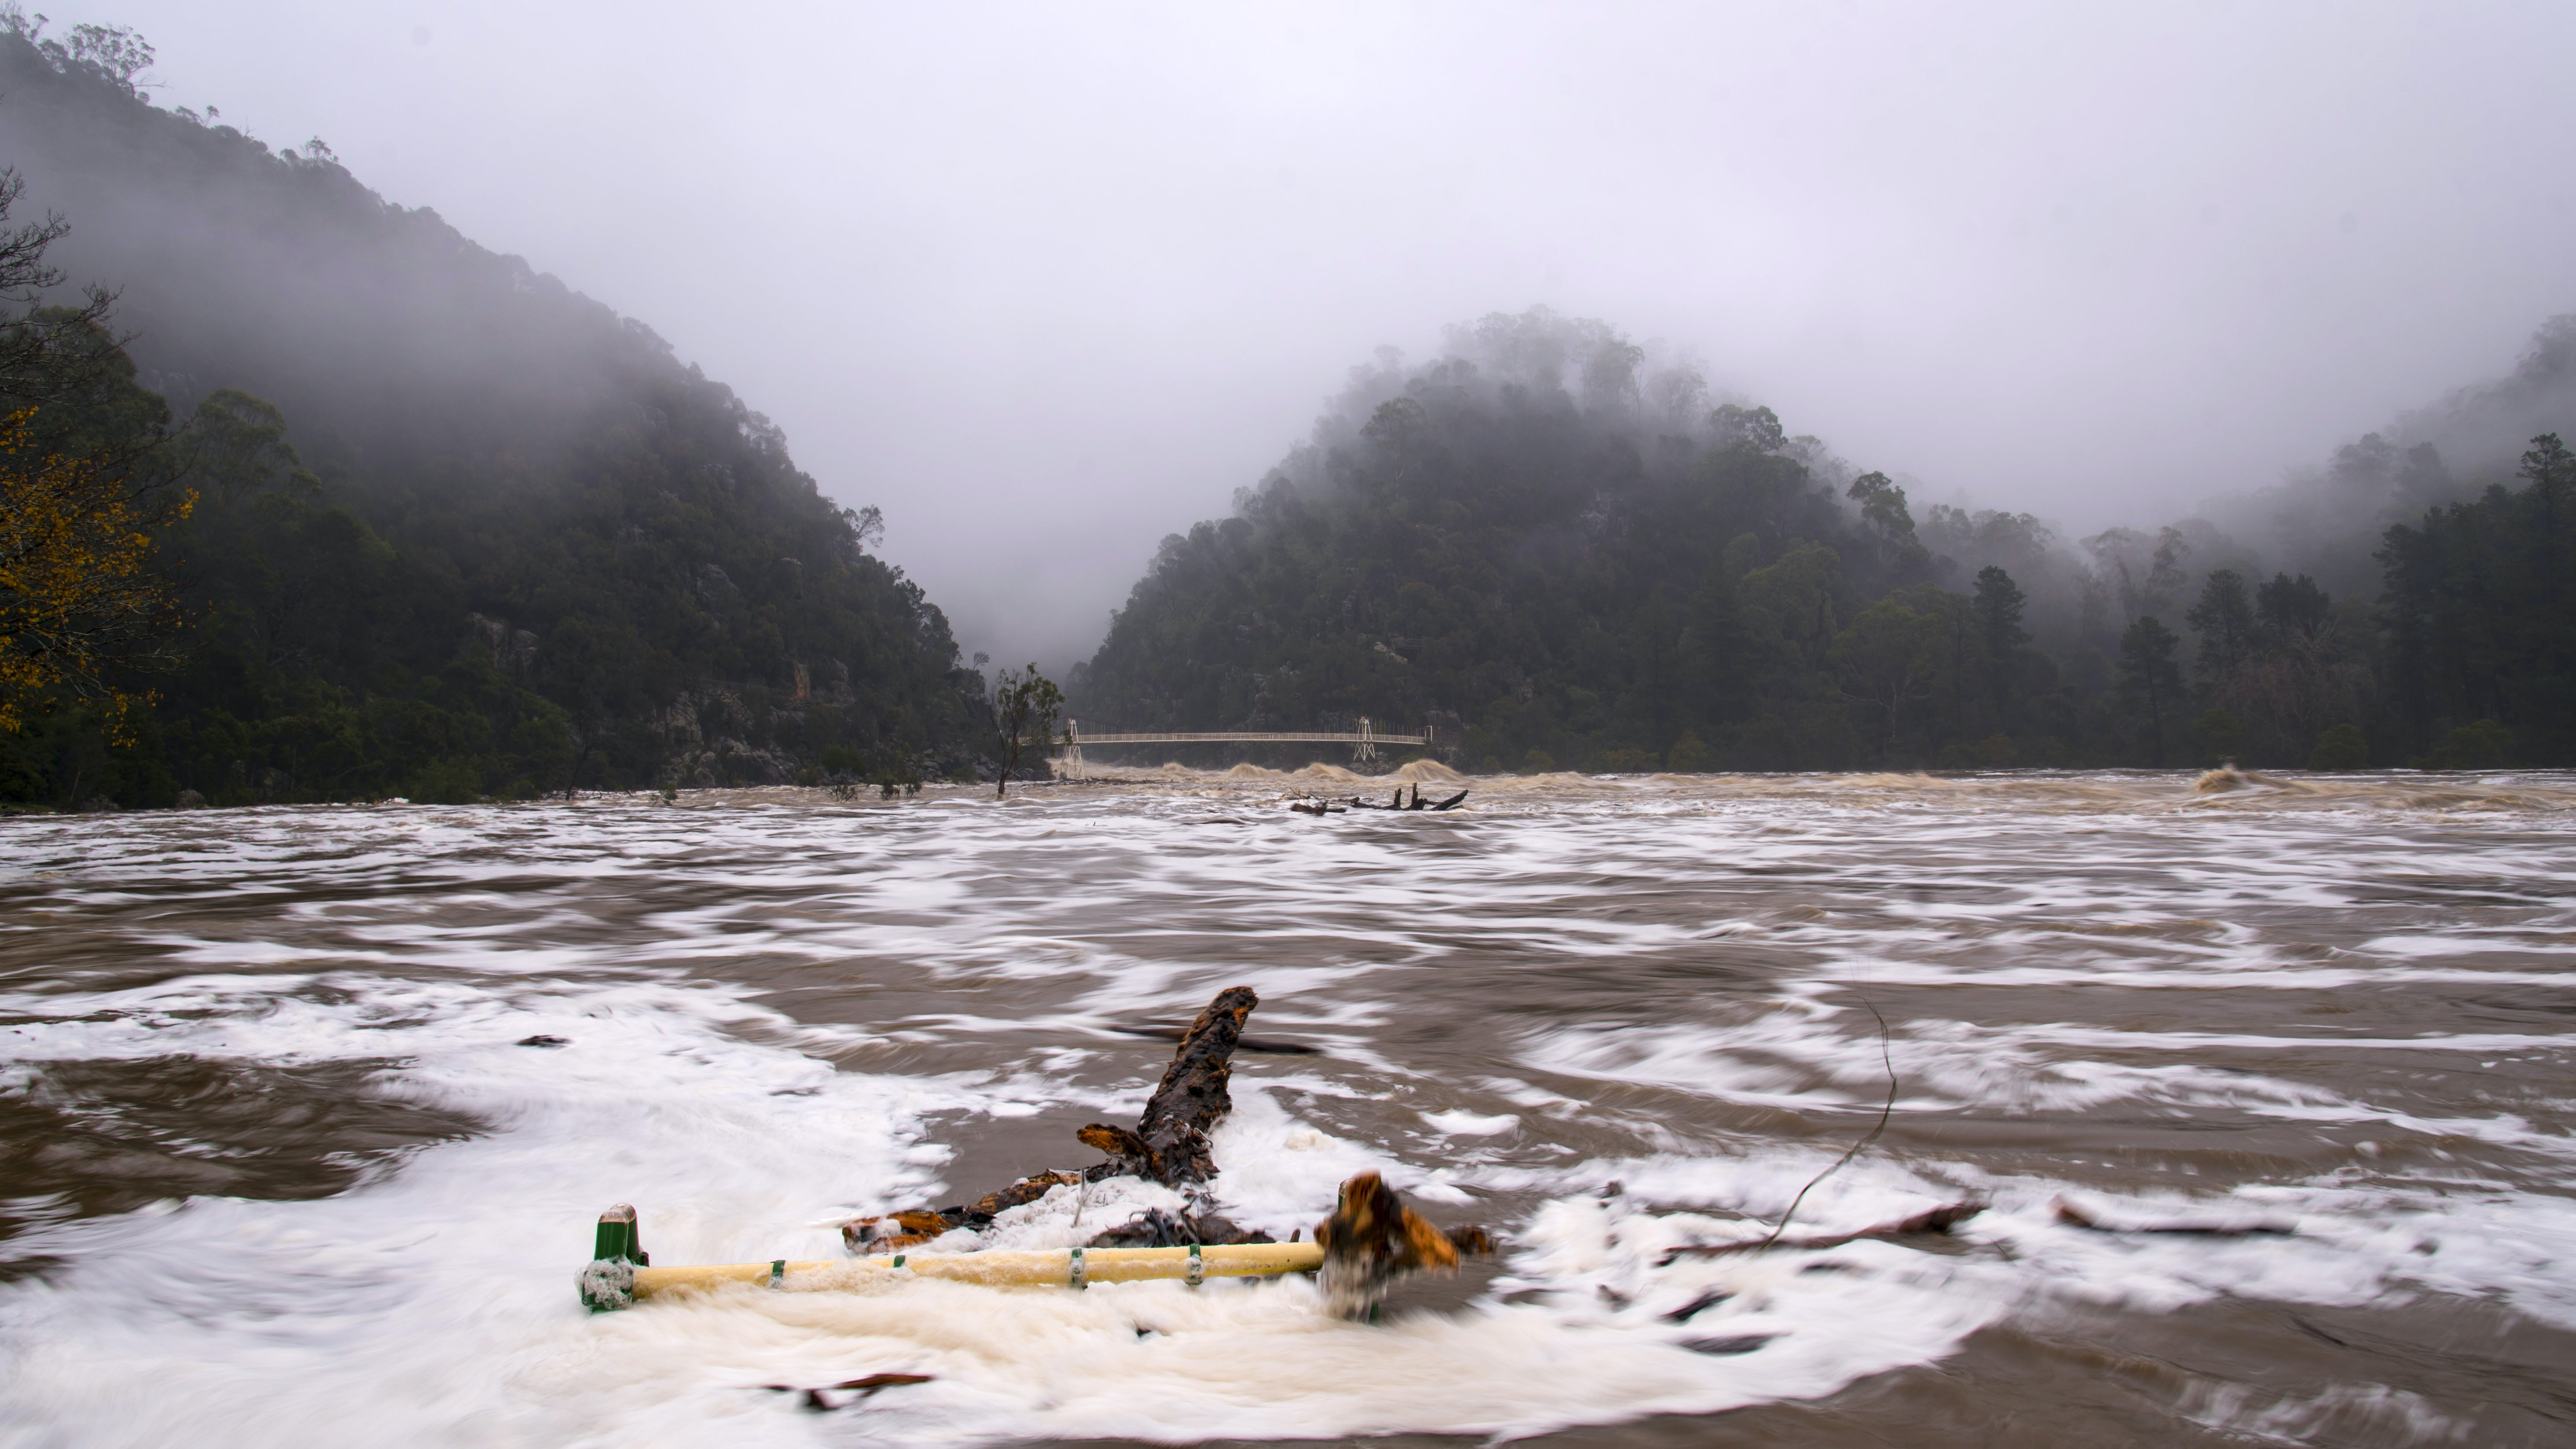 Flooding in the Cataract Gorge